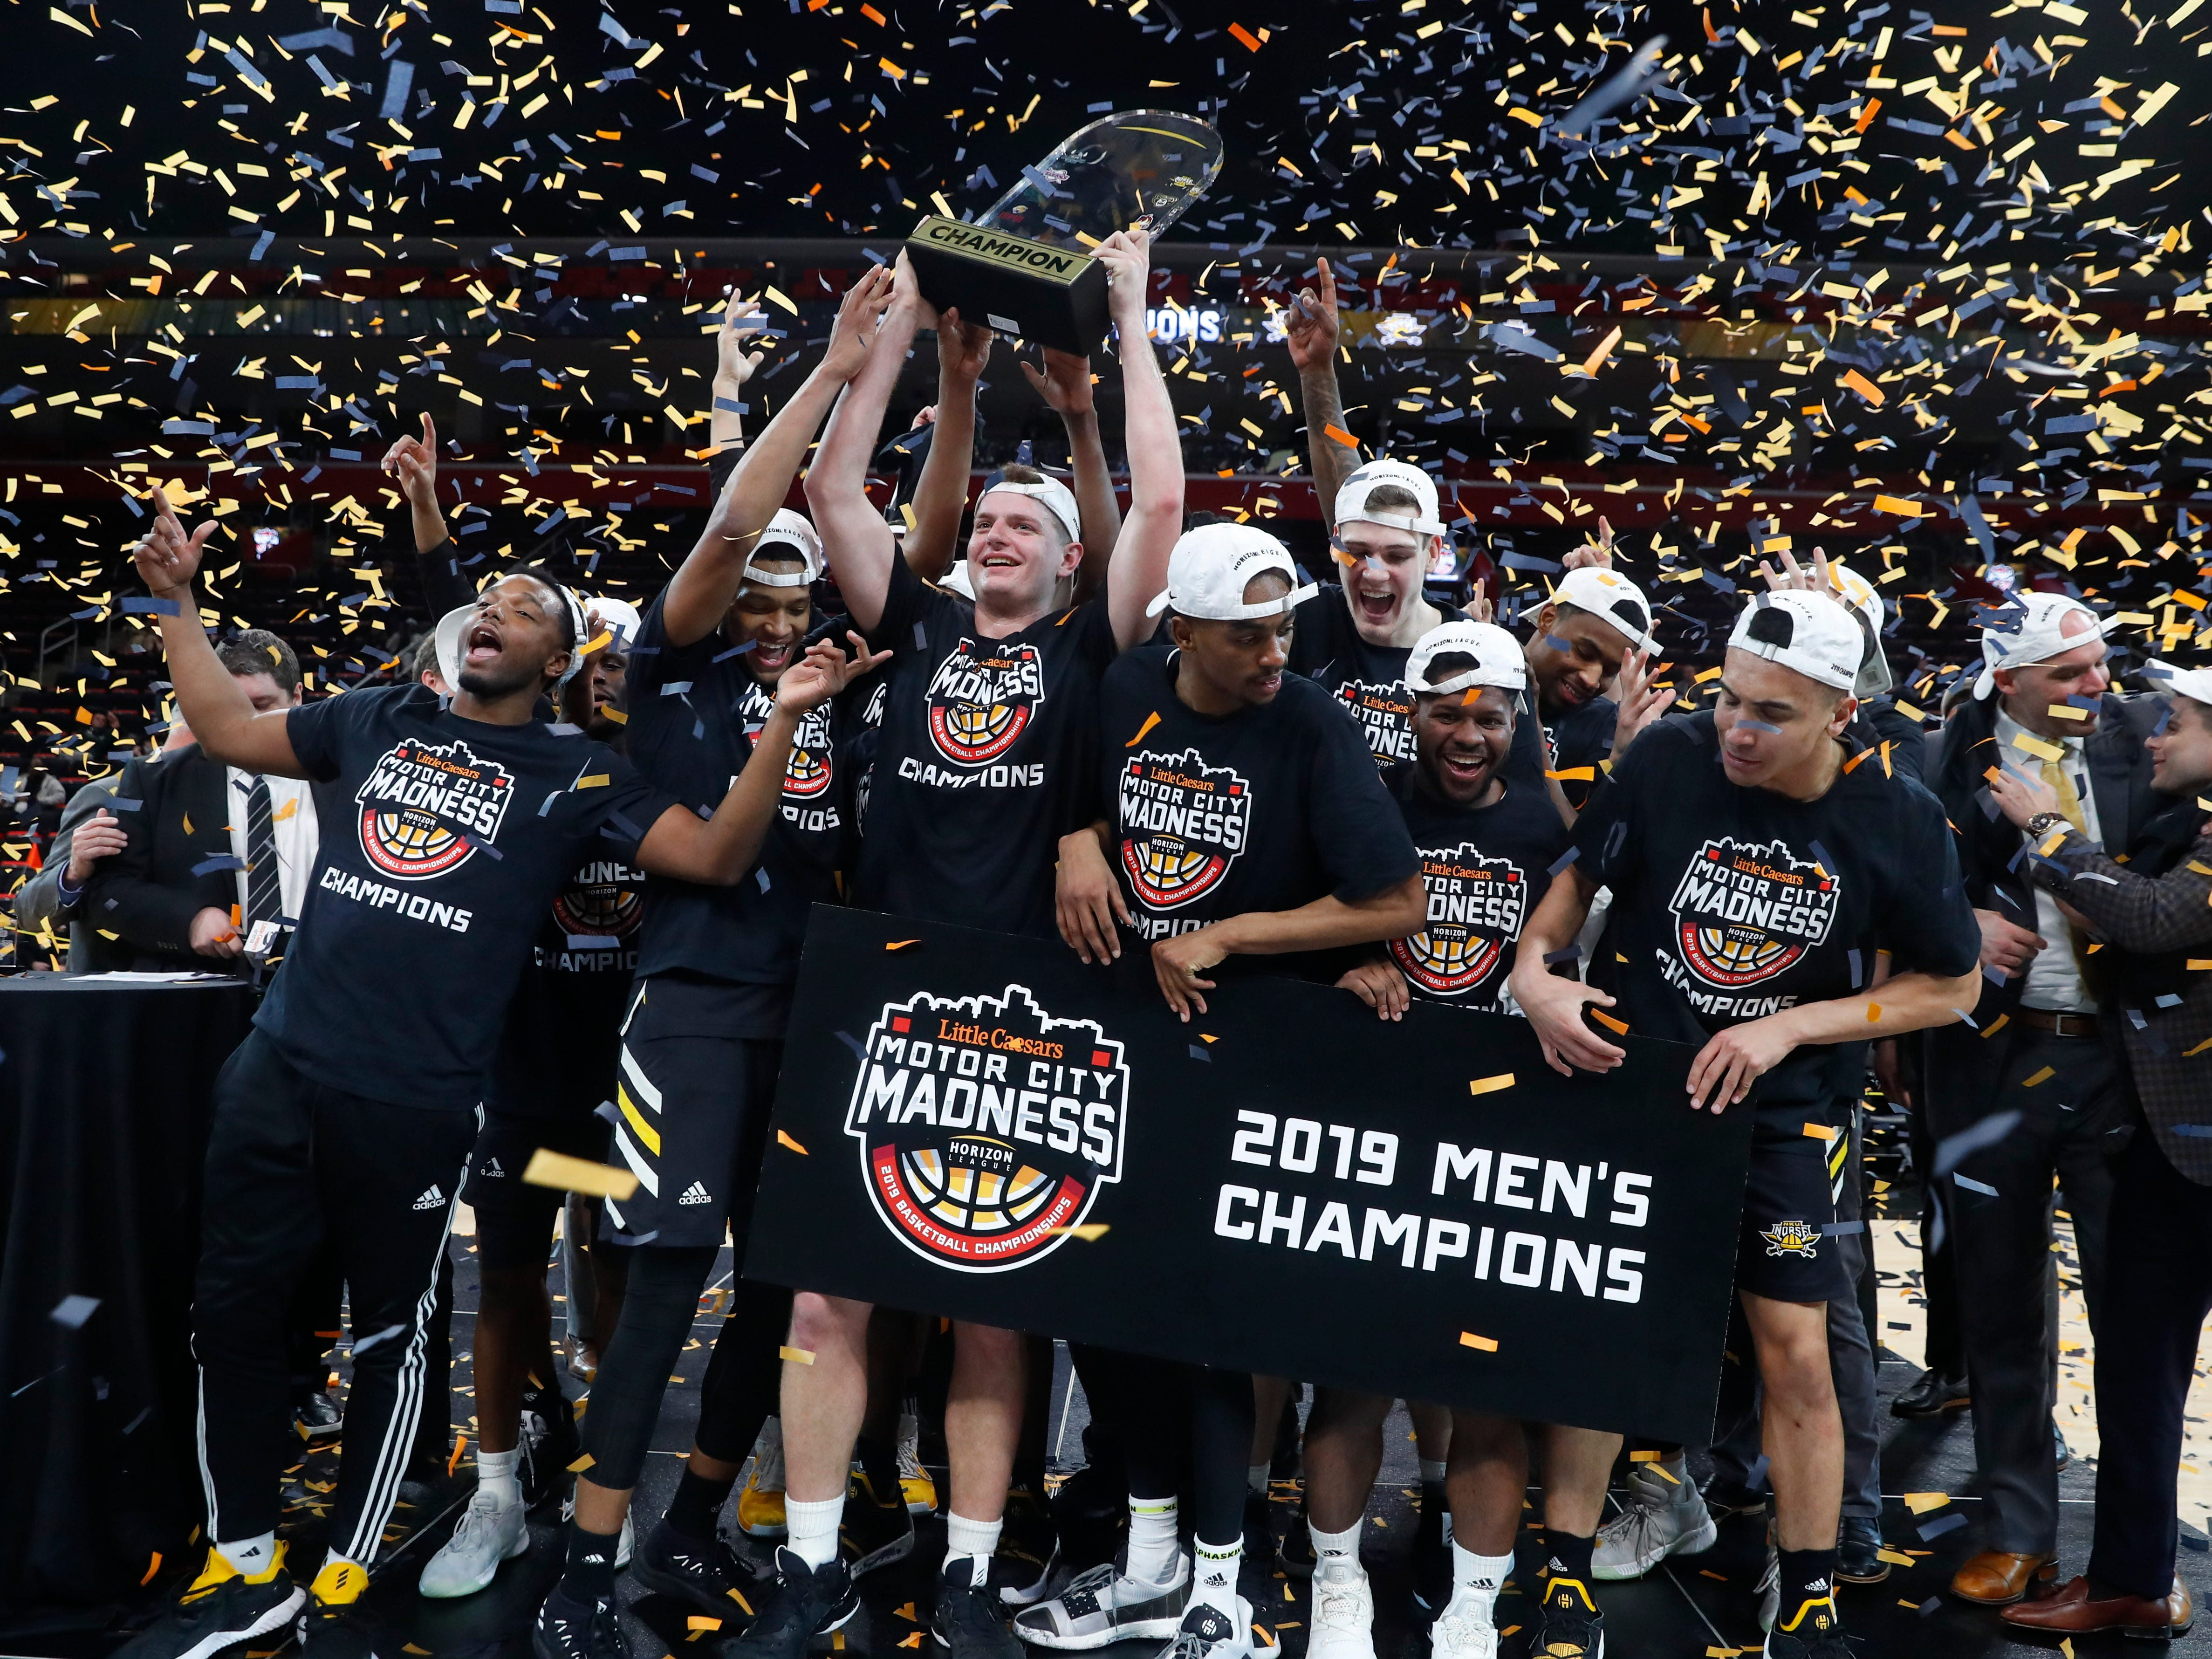 Northern Kentucky players celebrate their 77-66 win against Wright State after an NCAA college basketball game for the Horizon League men's tournament championship in Detroit, Tuesday, March 12, 2019.